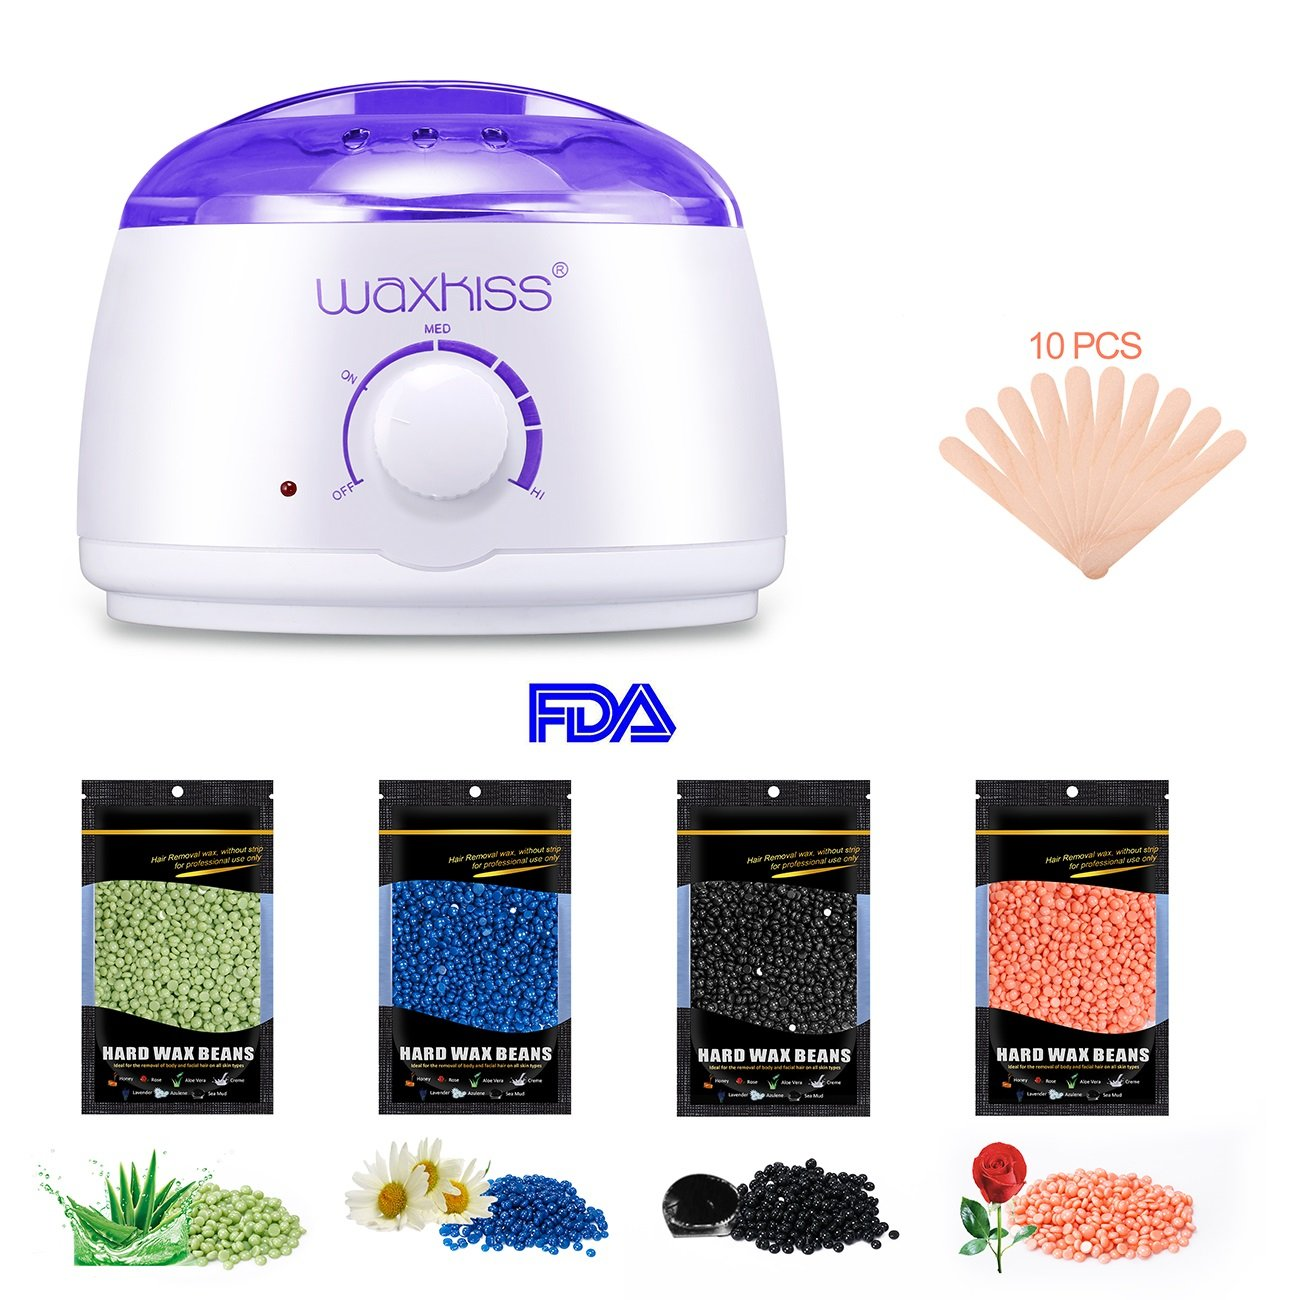 Waxkiss Waxing Kit At Home Wax Warmer Pot for Legs Bikini Upper Lip Armpit Arms Body Hair Removal Painless Wax Warmer Kit with 4 Bags Wax Beans and 10 wood spatulas